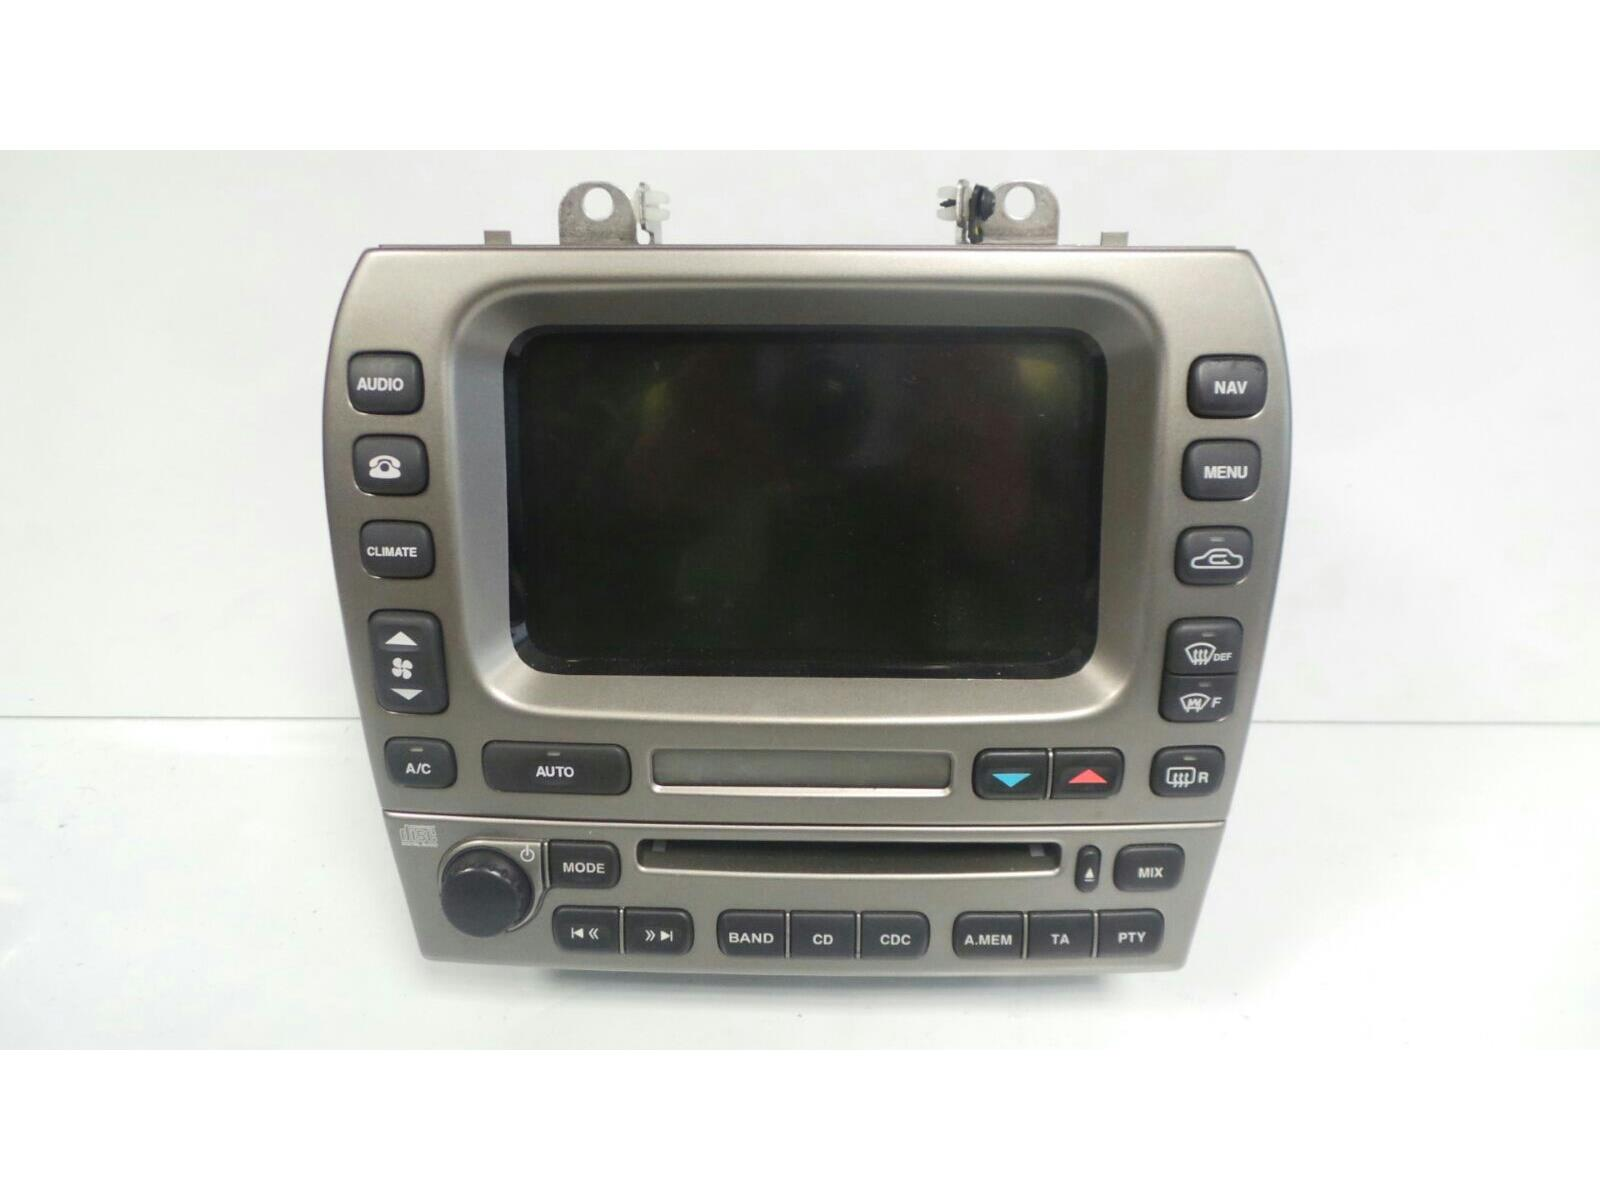 Jaguar 9X43 10E889 BA nav/cd player AM/FM Untesed May need coding by dealer